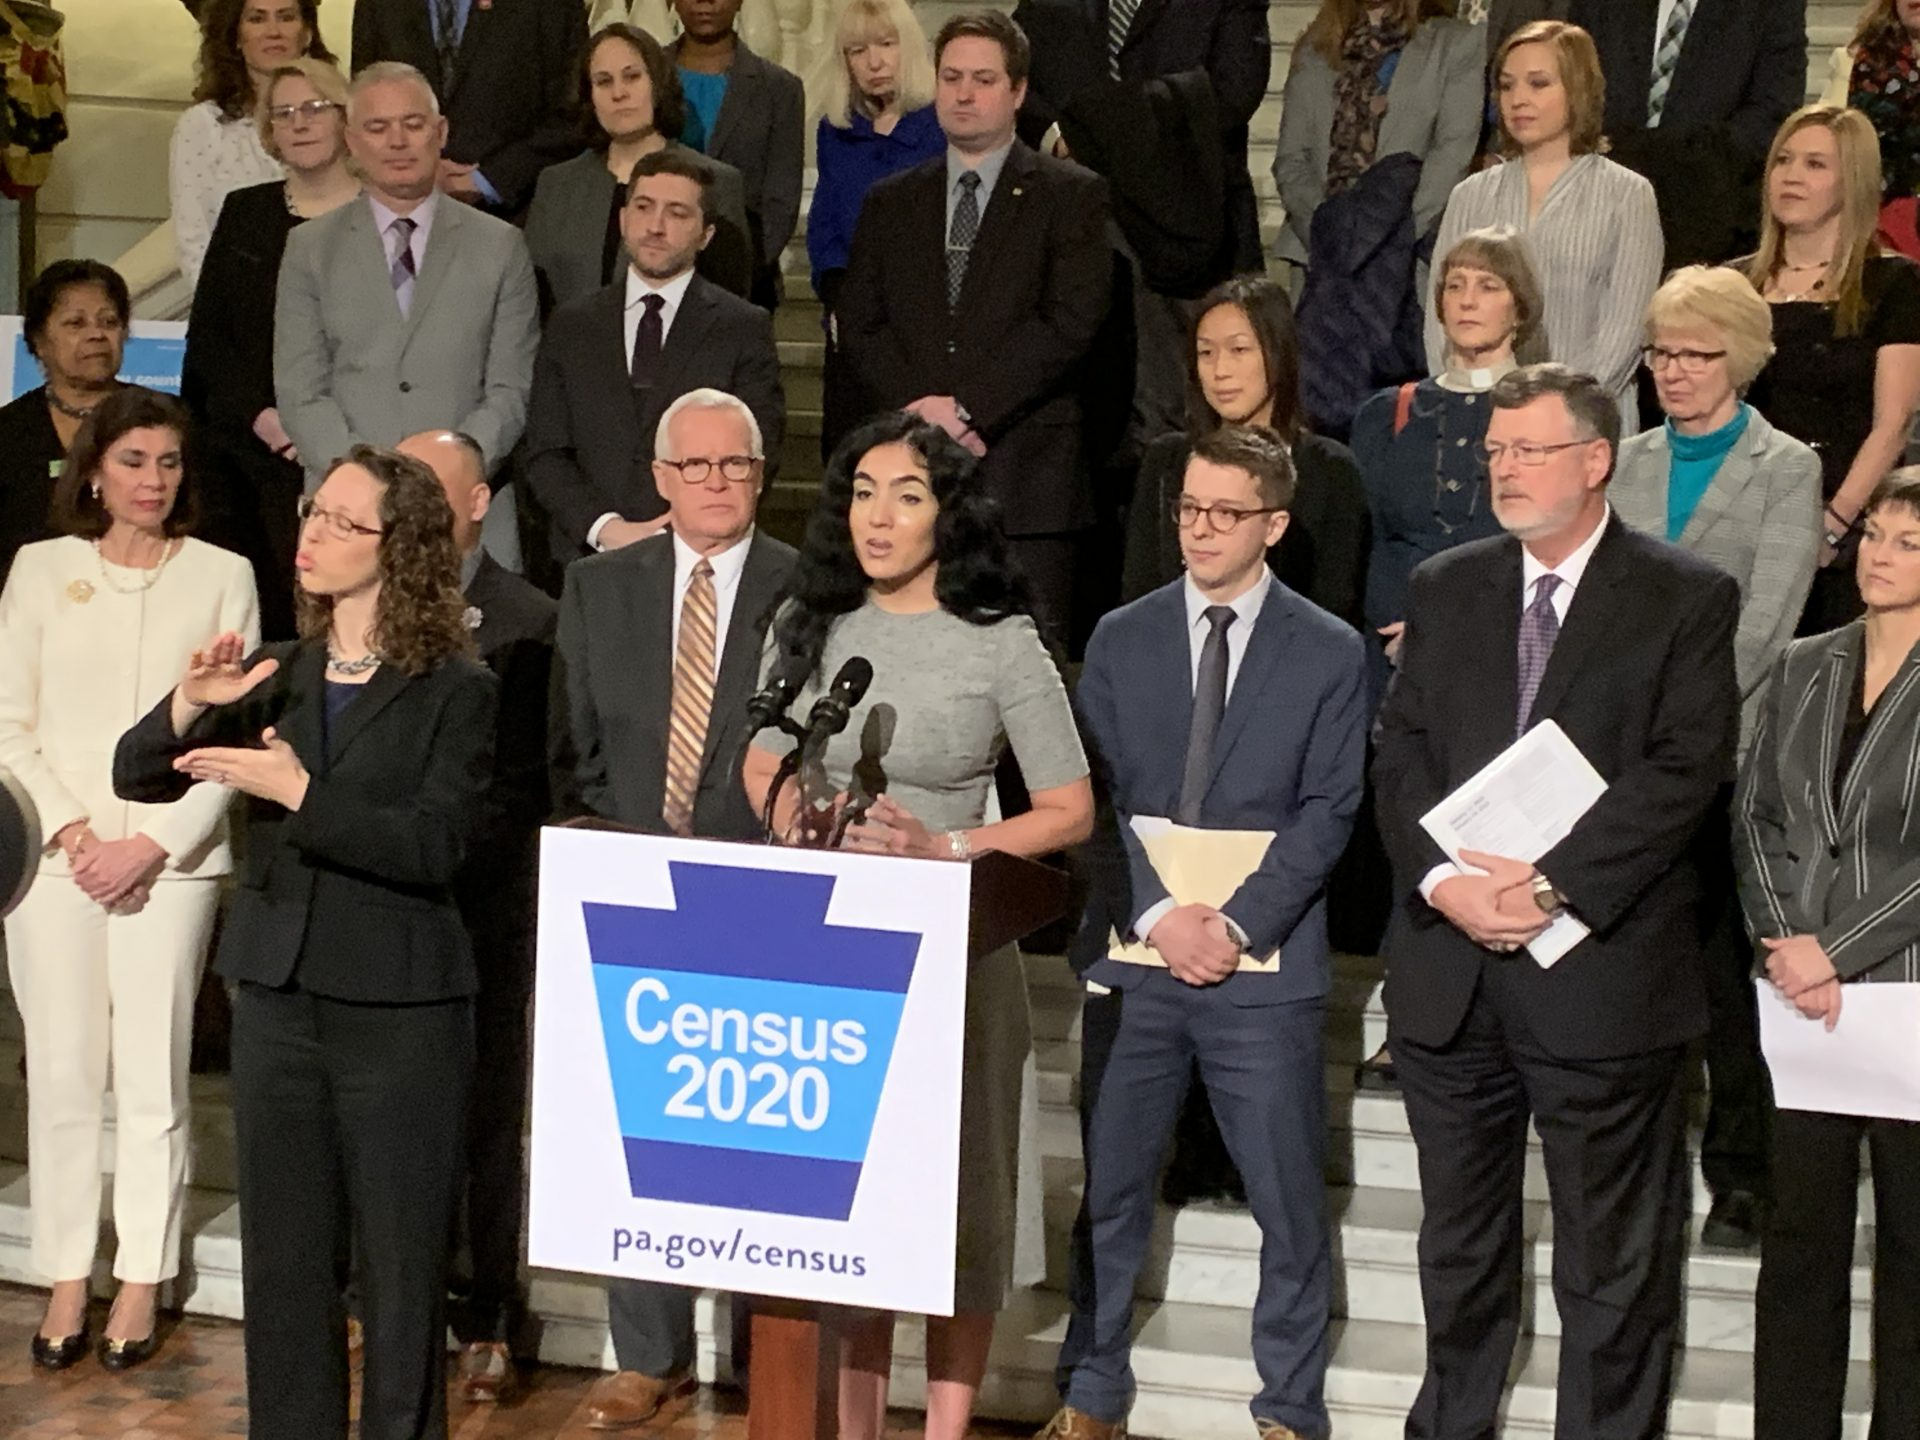 Pennsylvania's second lady Gisele Fetterman (at podium) announces at a Capitol news conference her upcoming statewide tour to try to get hard-to-reach populations to participate in the 2020 U.S. census.